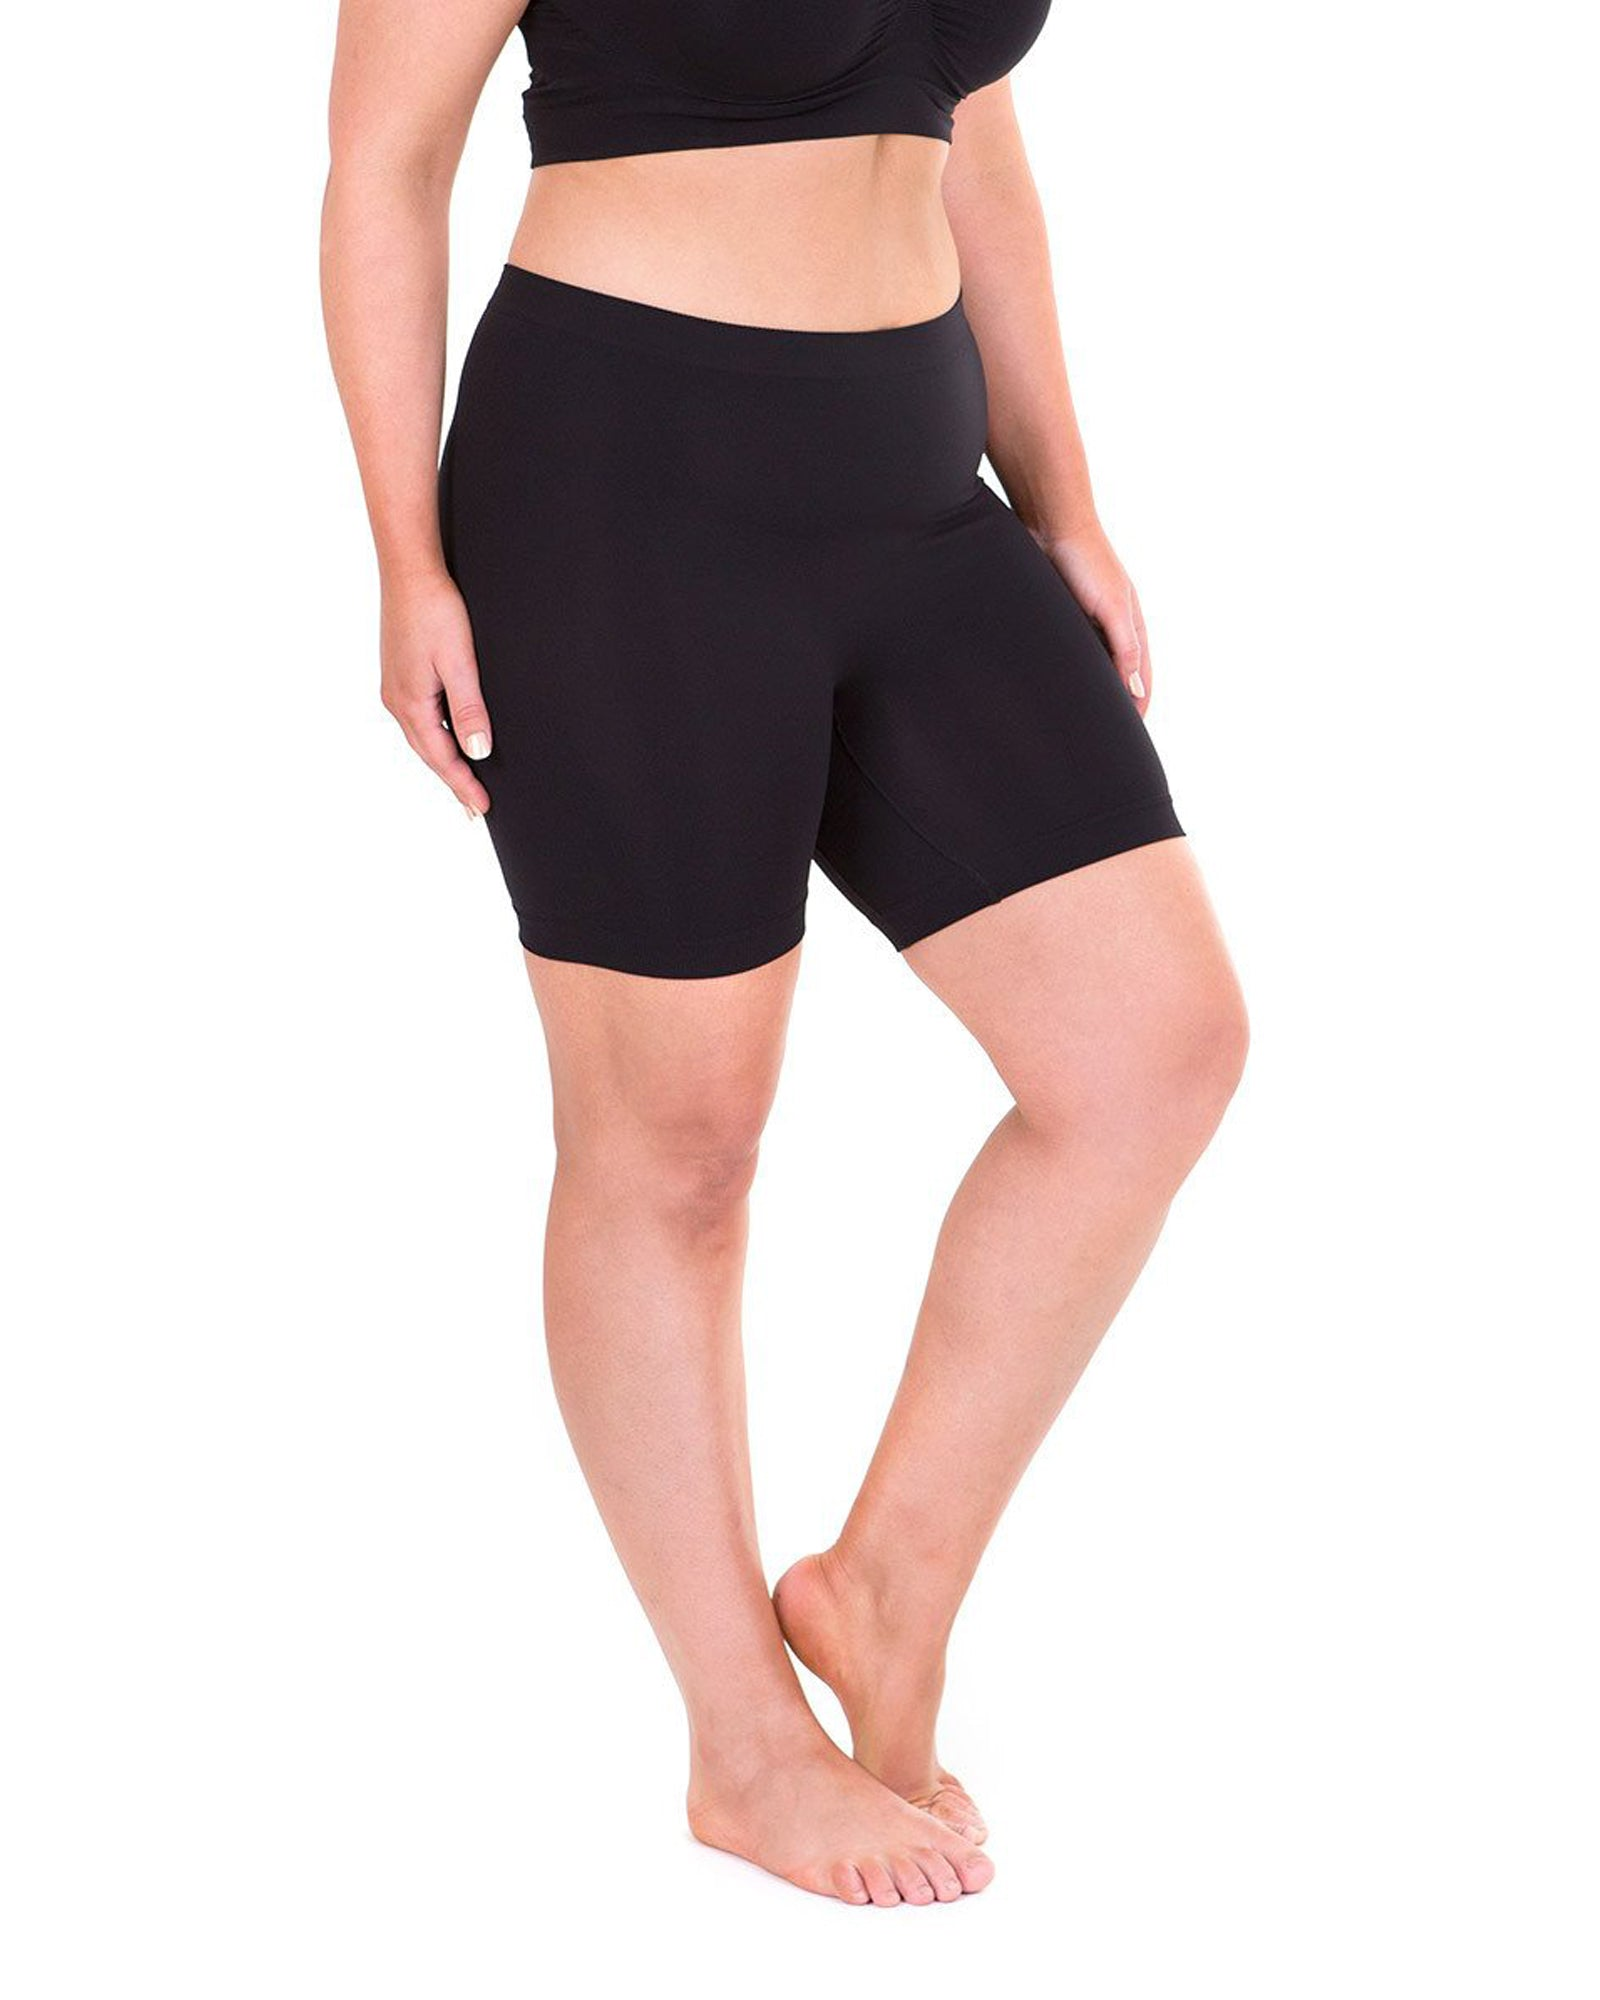 Anti Chafing Short Leg & Bra Set - Black - BUY 2 & SAVE $10